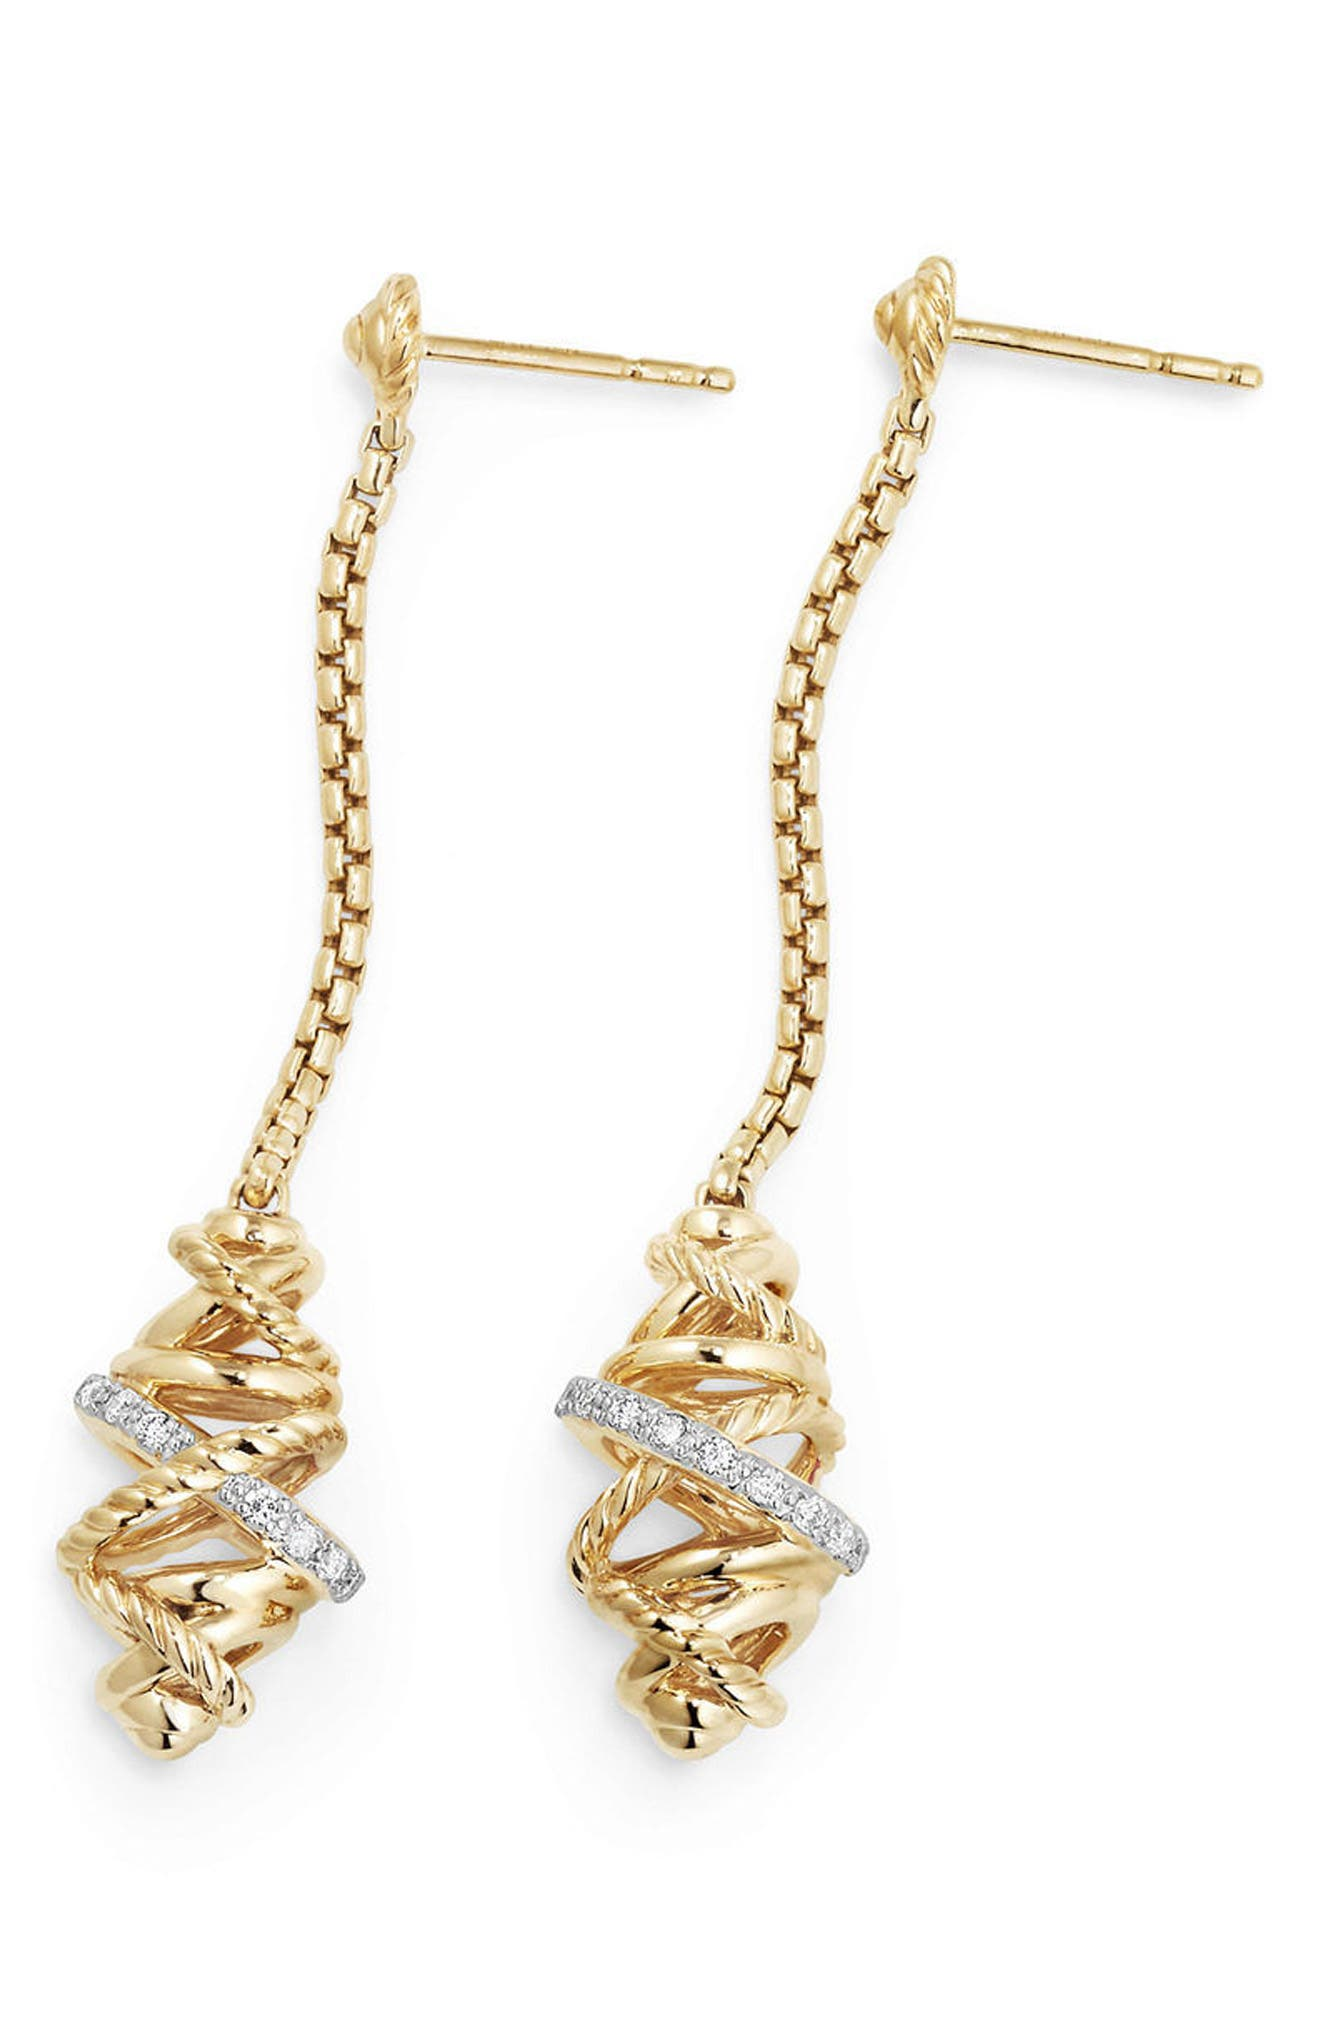 Crossover Chain Drop Earrings with Diamonds in 18K Gold,                             Alternate thumbnail 2, color,                             YELLOW GOLD/ DIAMOND